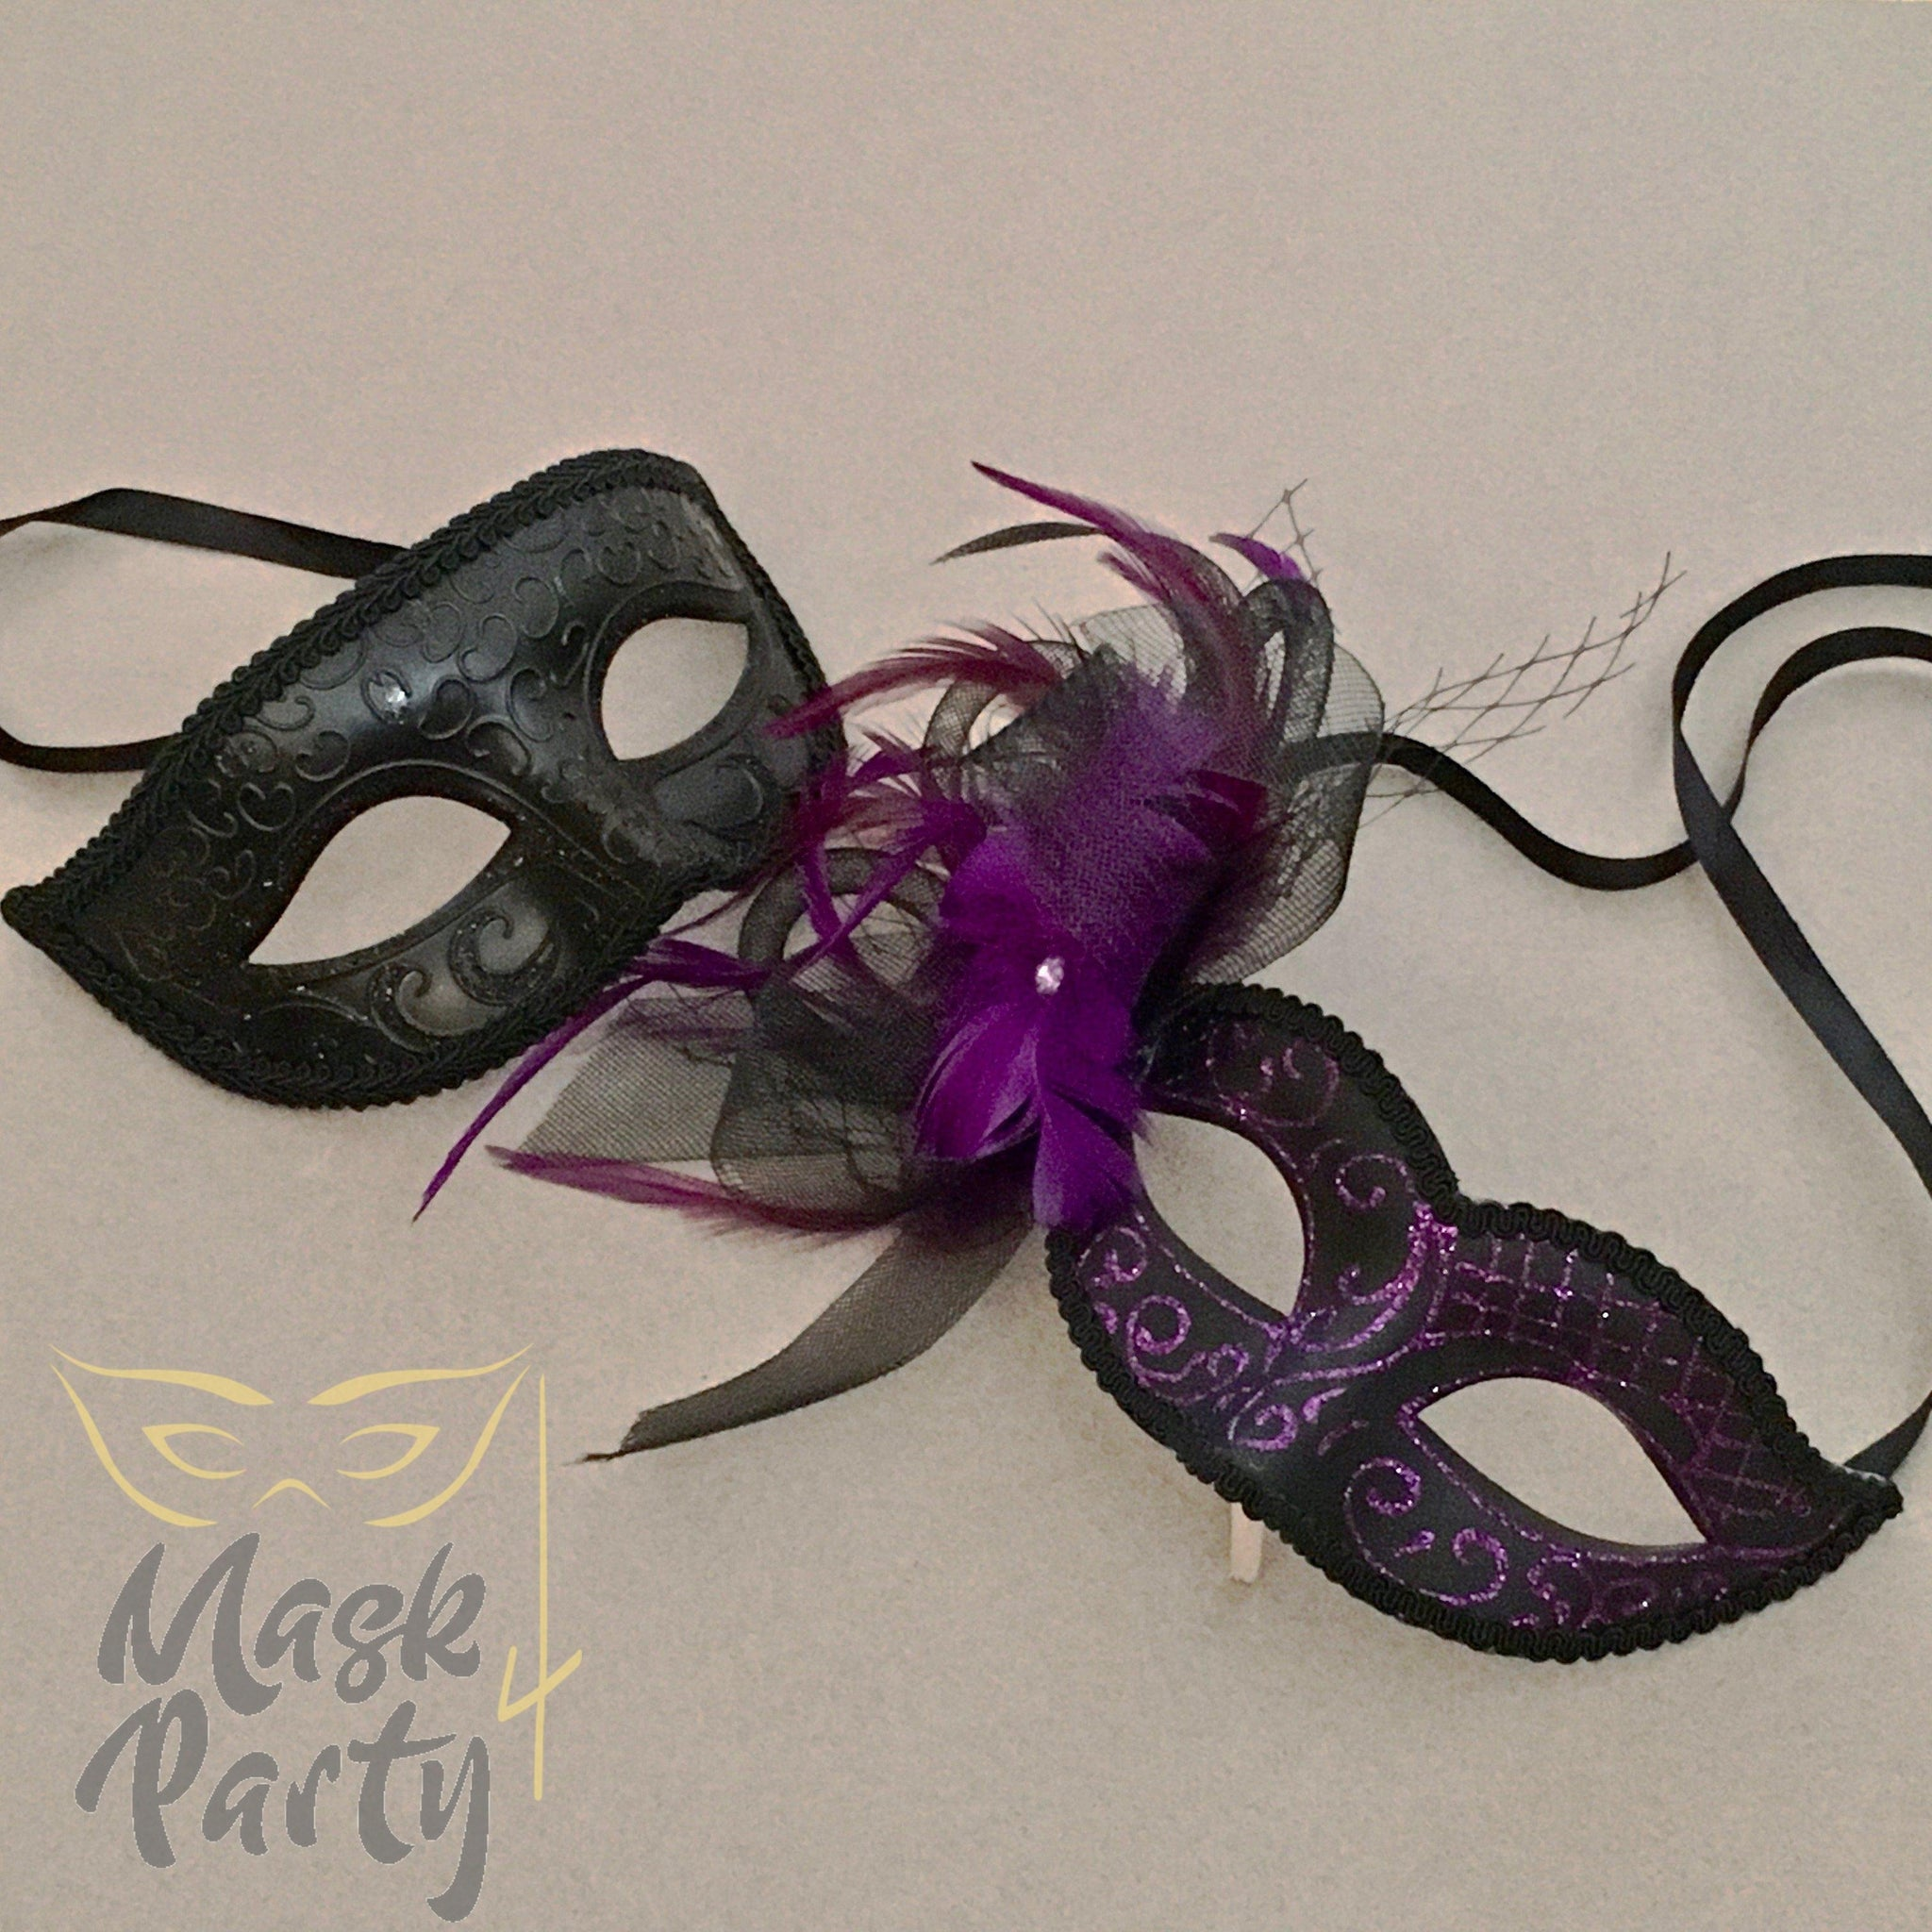 Masquerade Masks - Eye & Venetian Floral - Black/Purple Glitter - Mask4Party